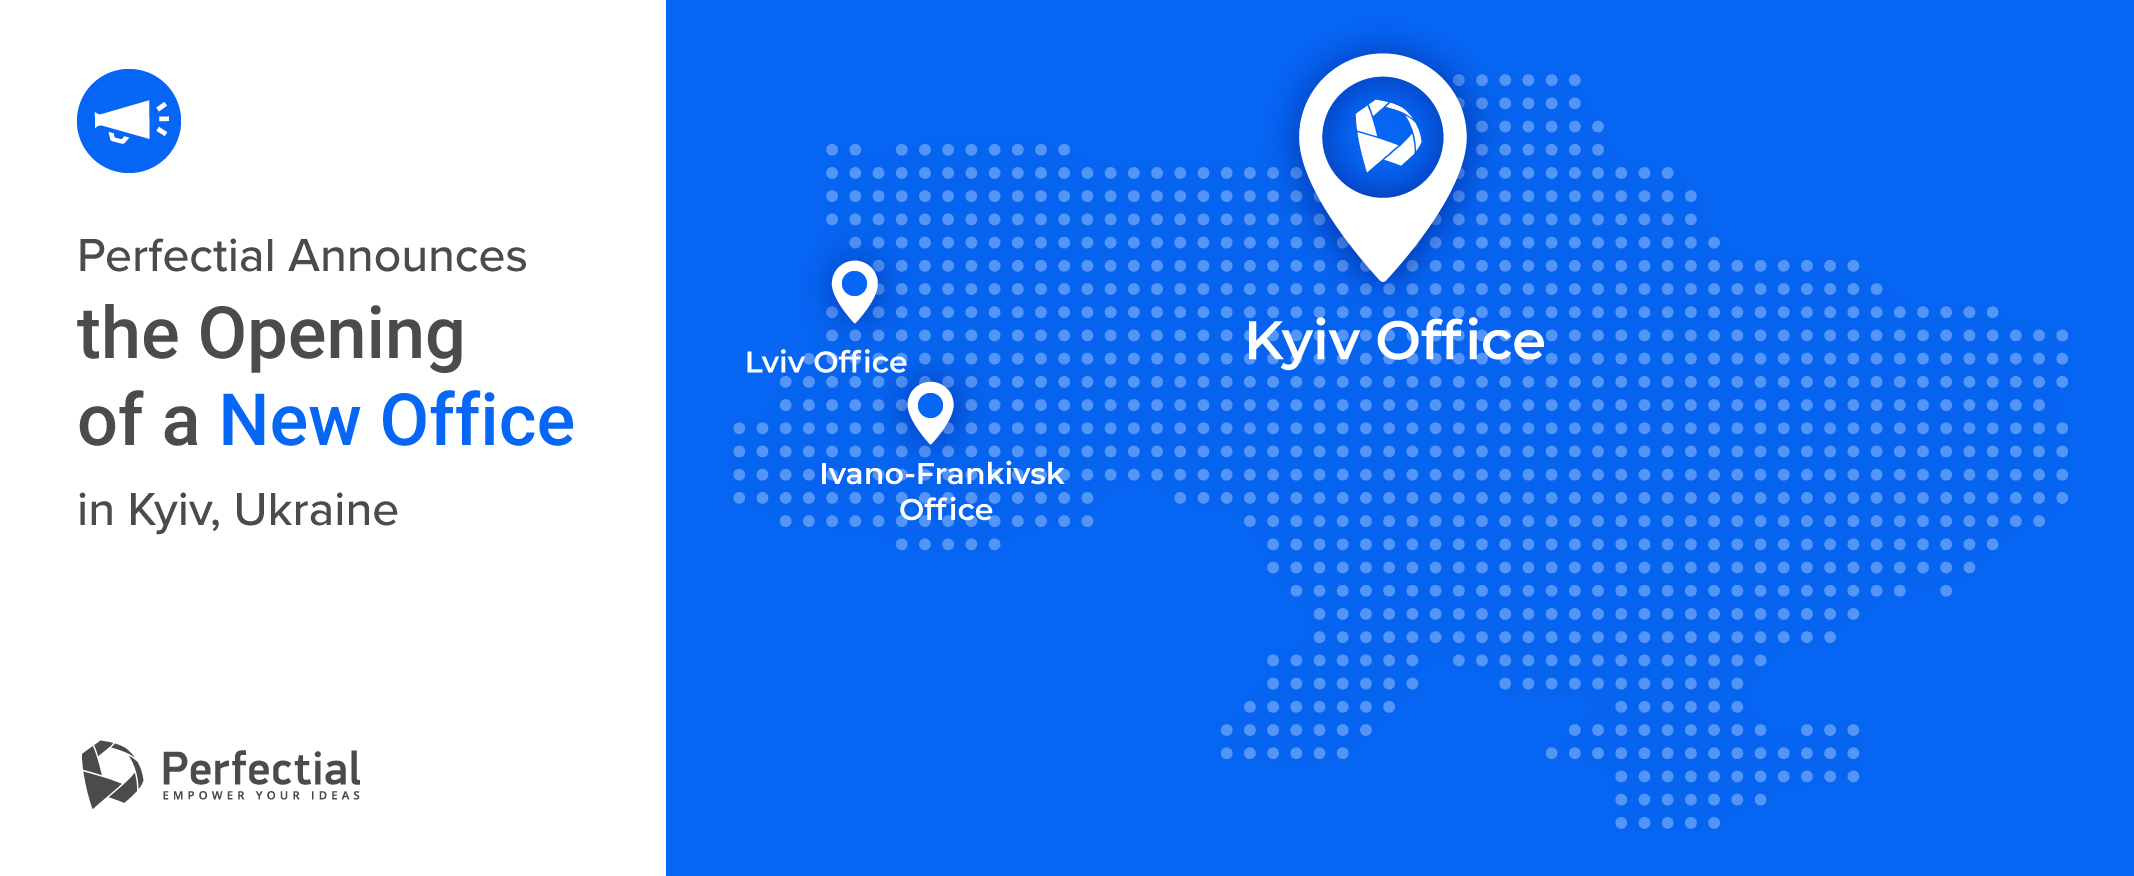 Perfectial Announces the Opening of a New Office in Kyiv, Ukraine